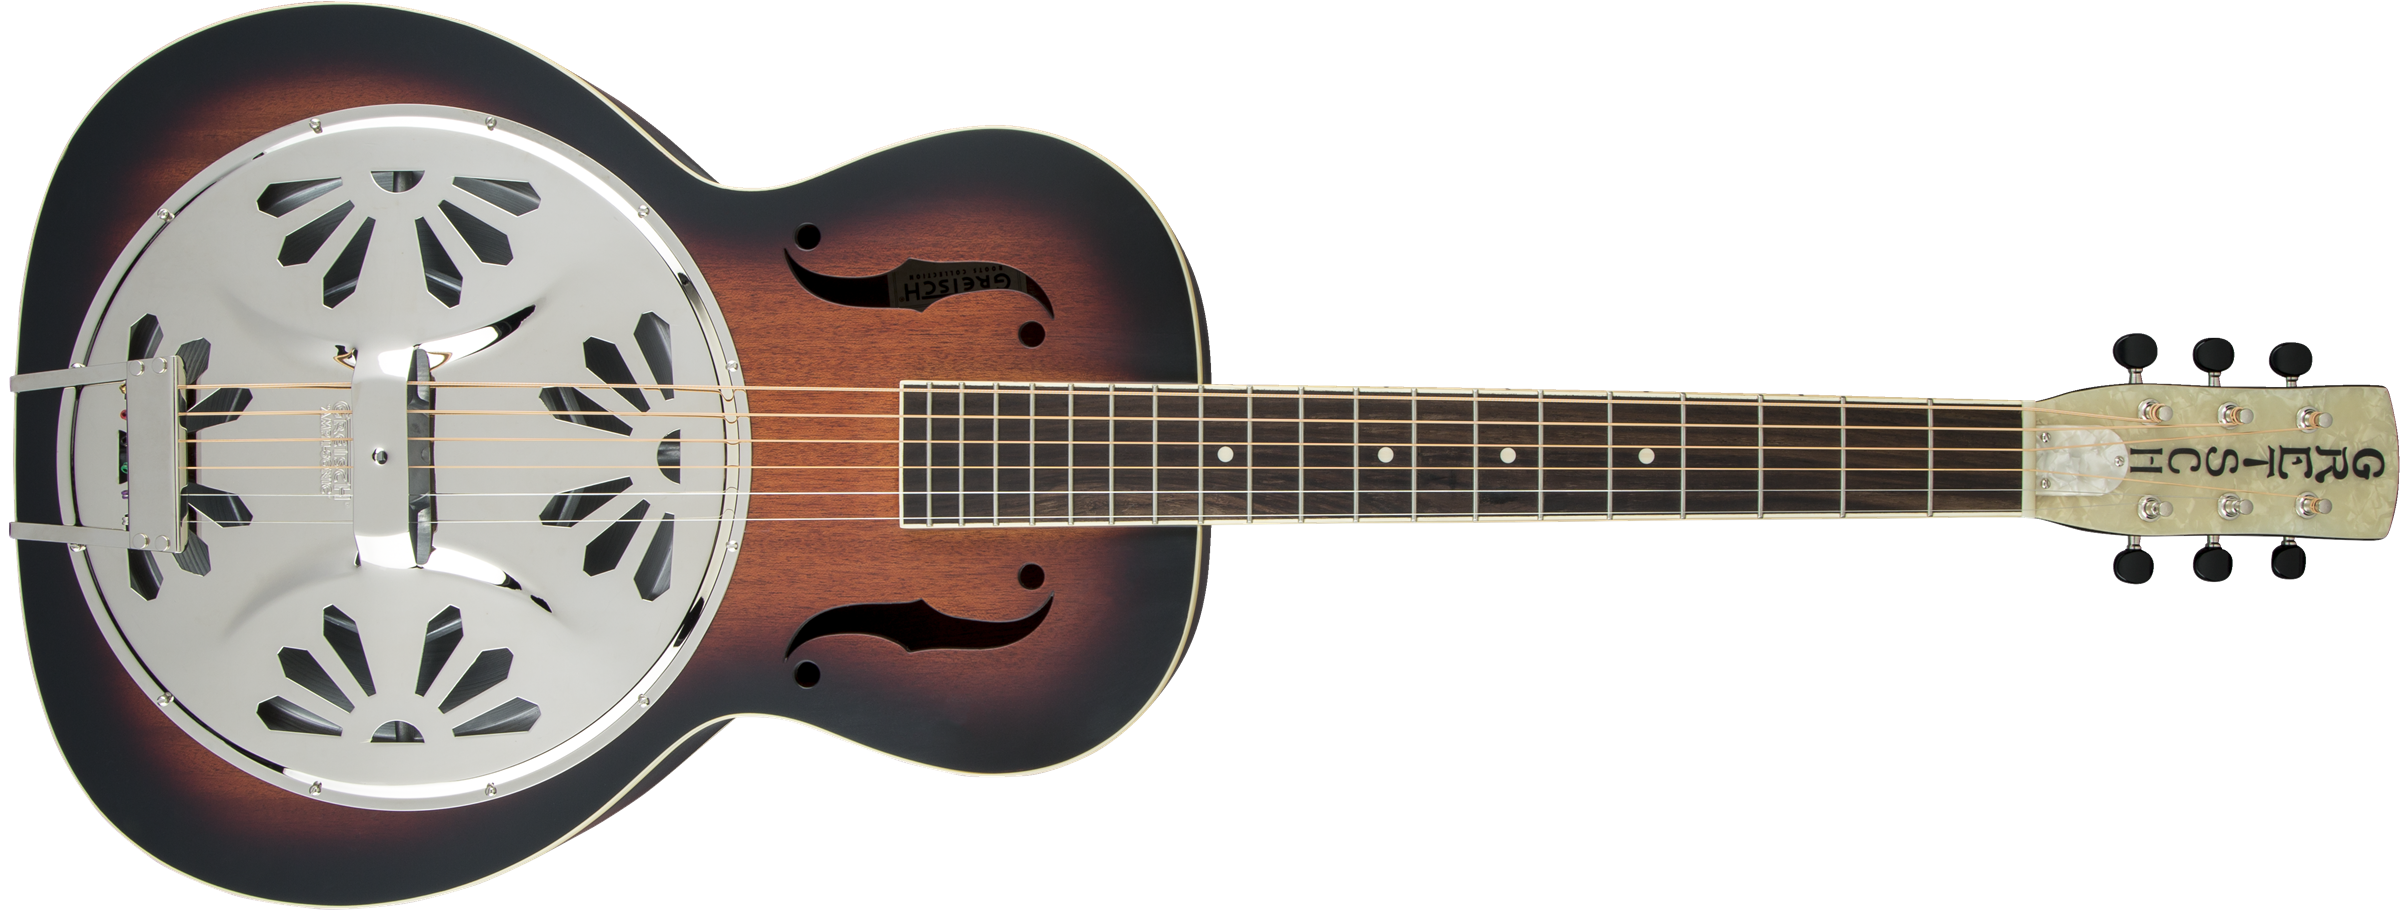 GRETSCH G9220 Bobtail Round-Neck A.E., Mahogany Body Spider Cone Resonator Guitar, Fishman Nashville Resonator Pickup, 2-Color Sunburst